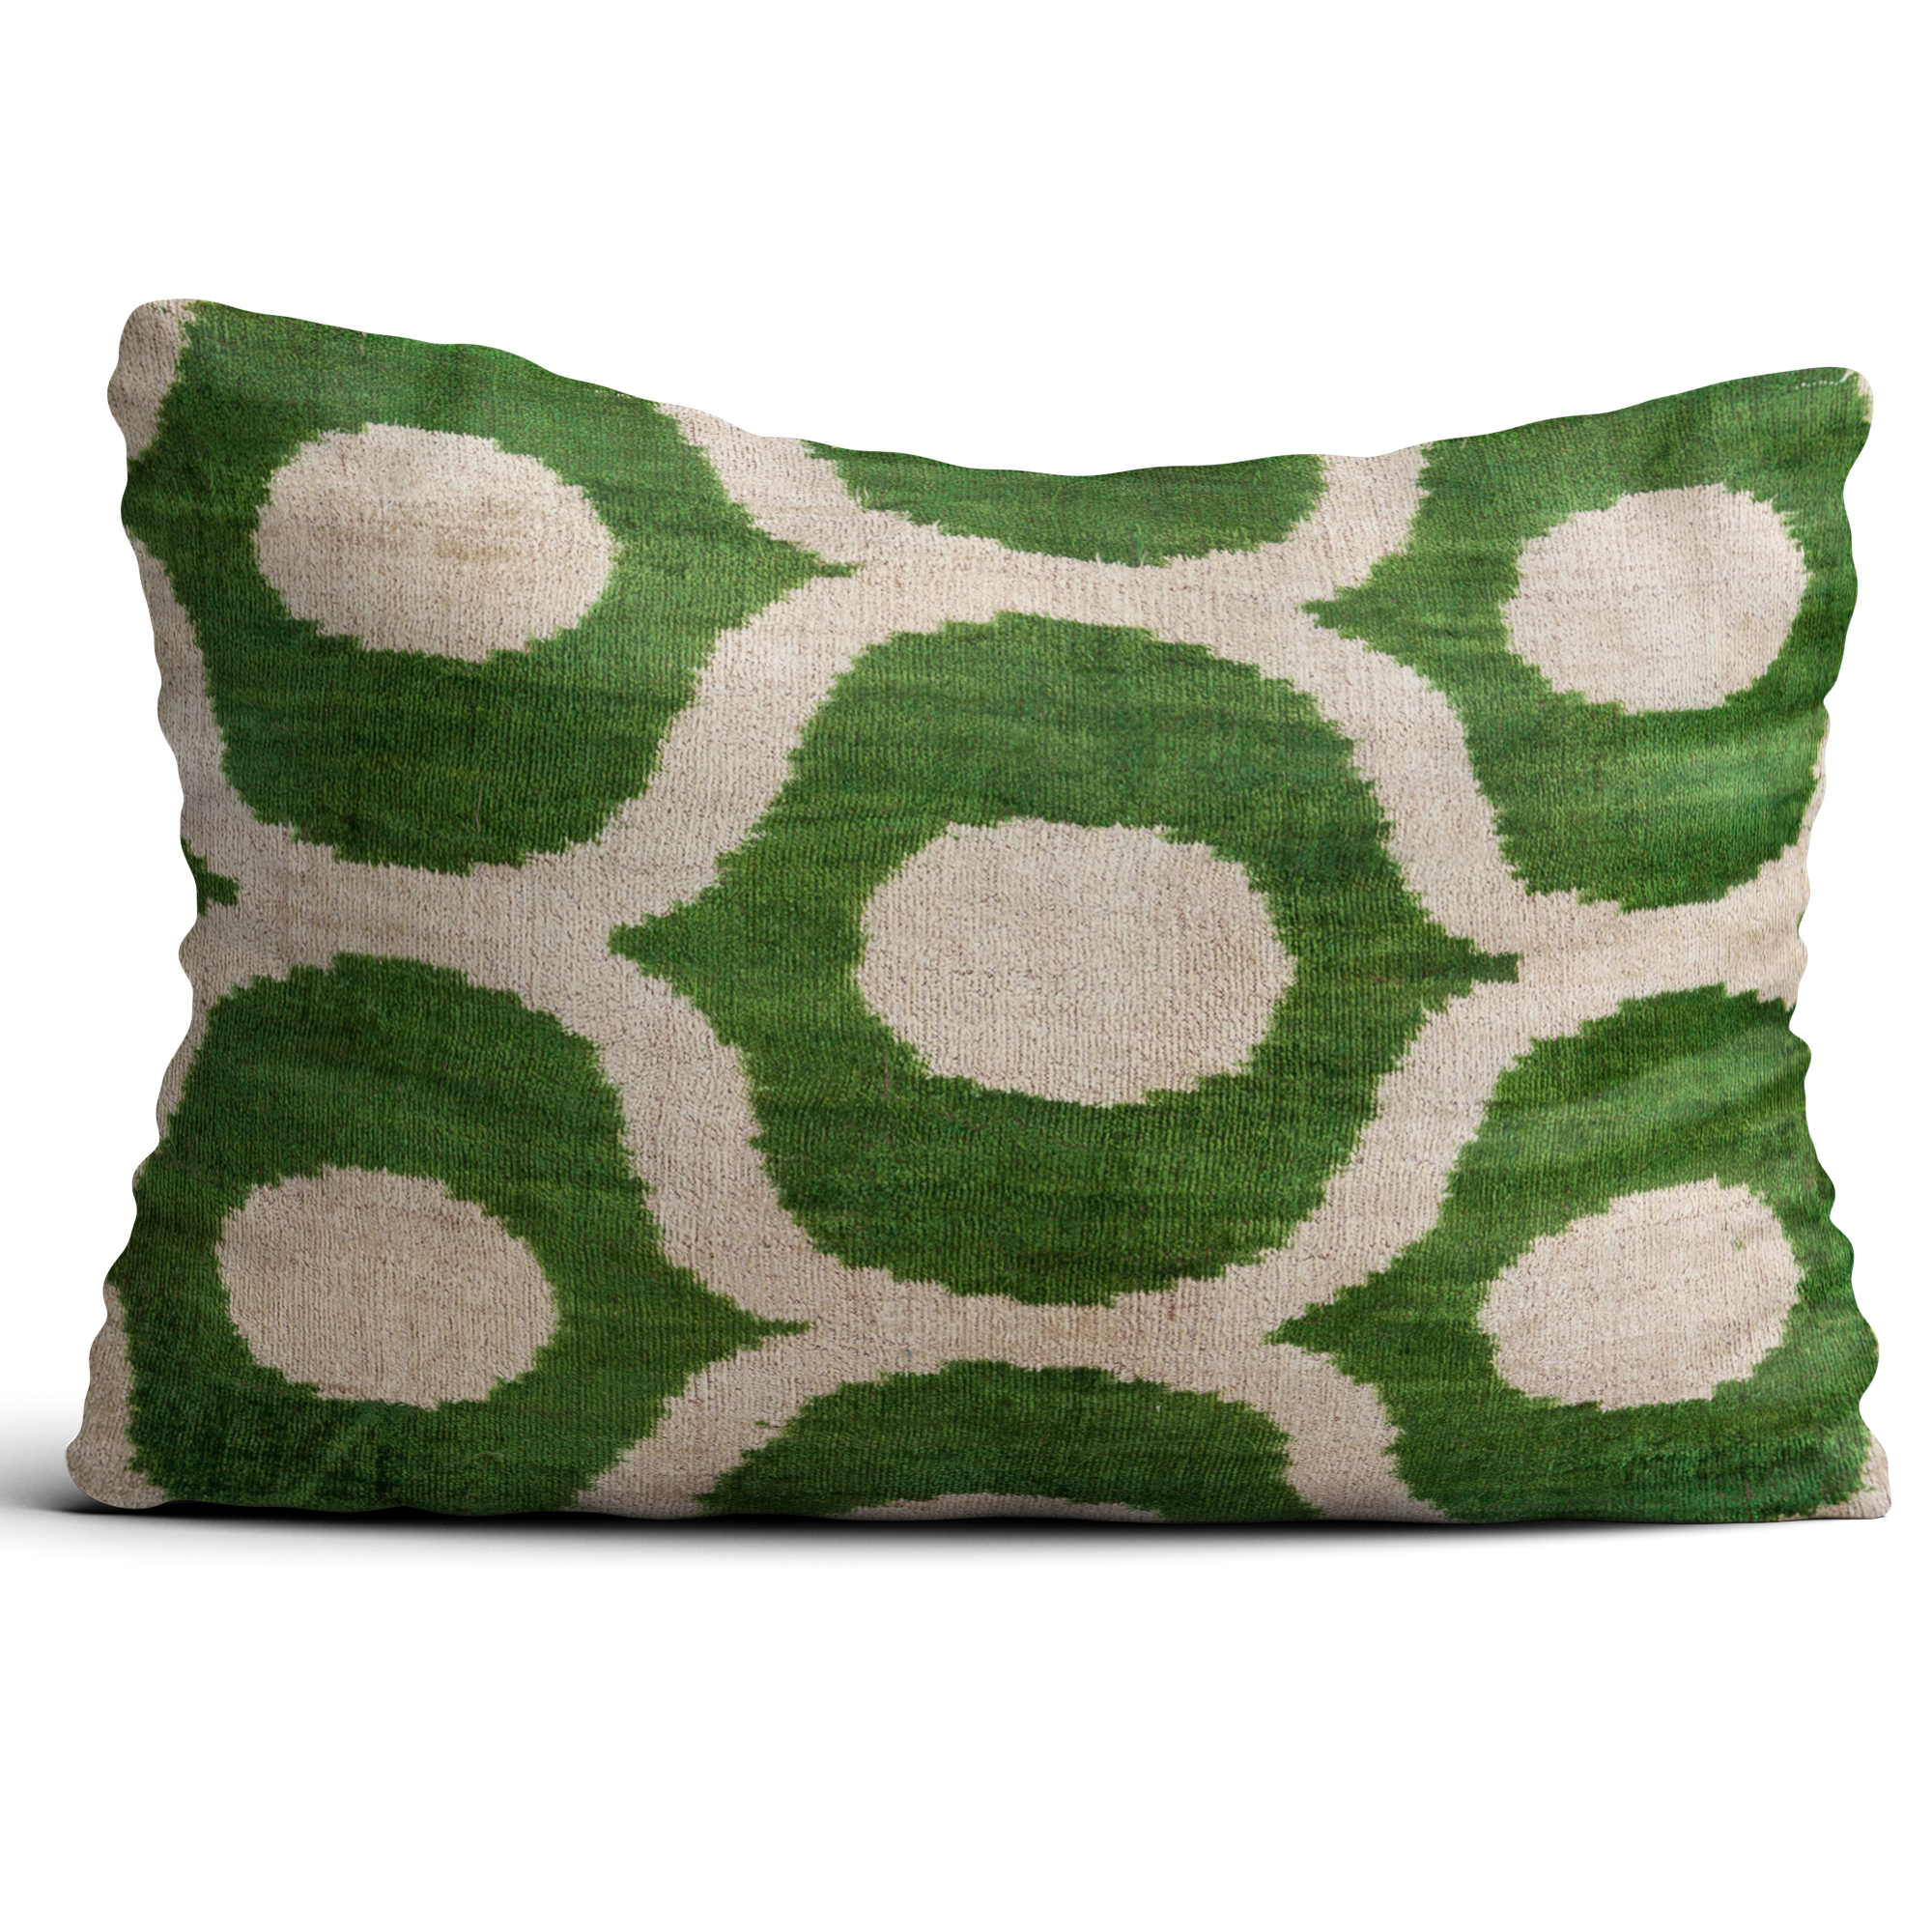 2635-silk-velvet-ikat-pillow